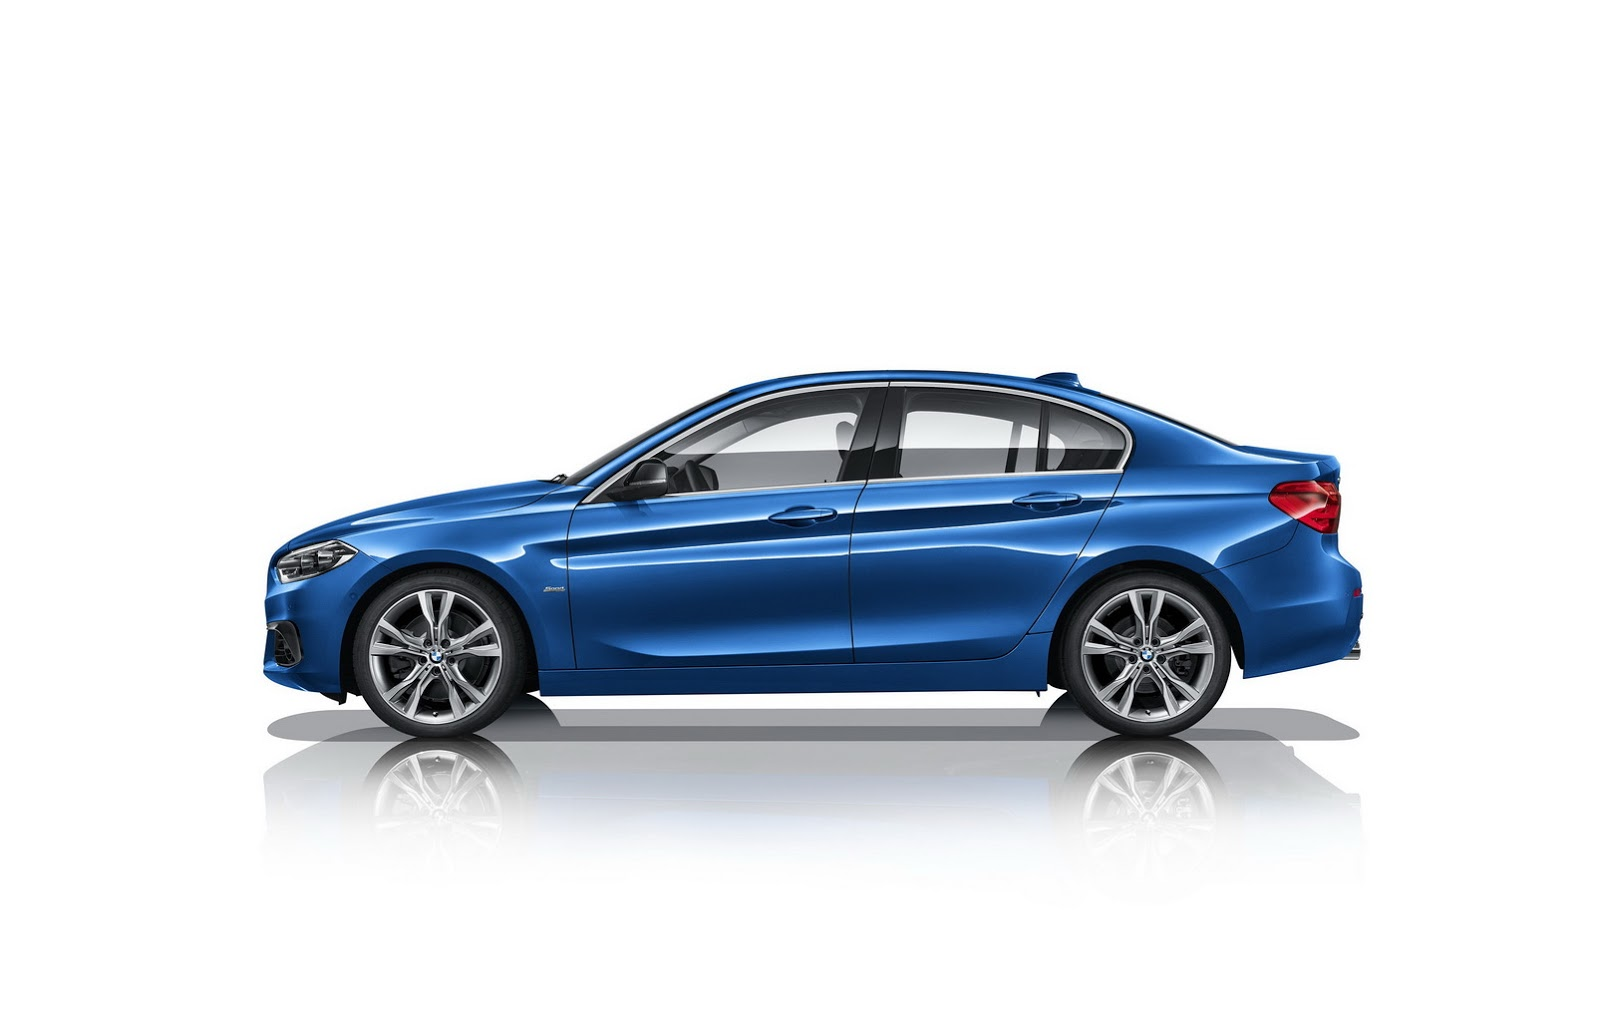 bmw-1series-sedan-detailed-4.jpg